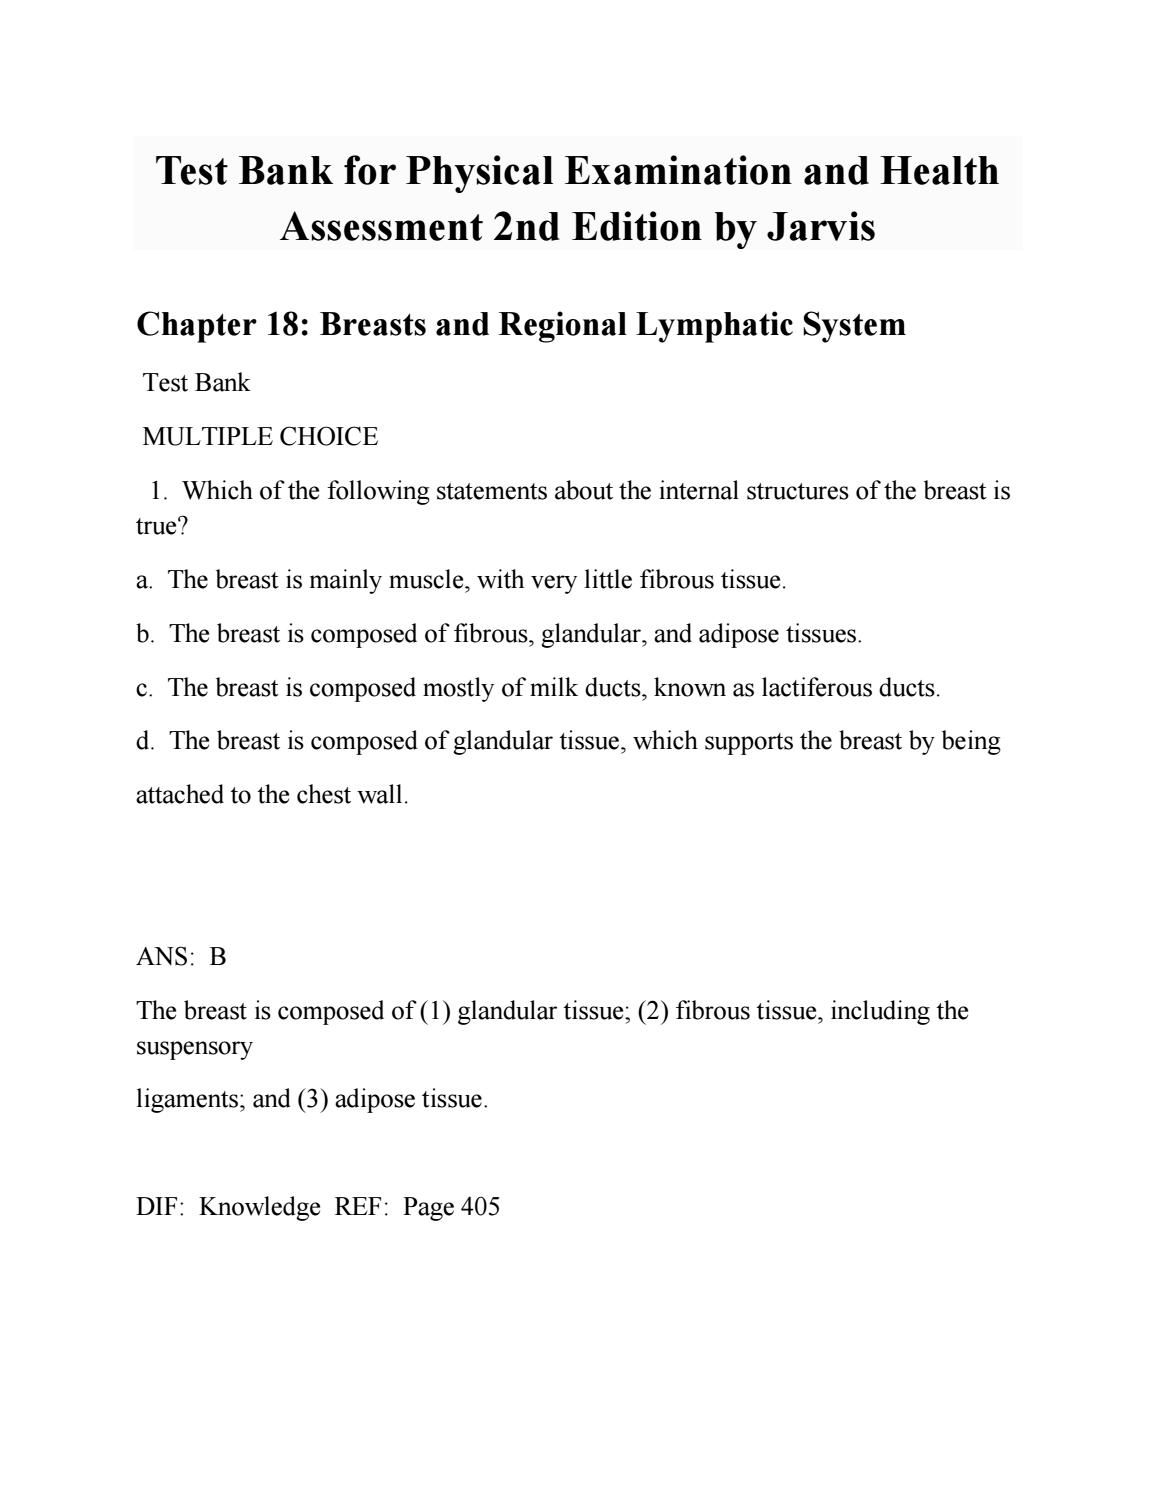 test bank for physical examination and health assessment 2nd edition rh pinterest com mx Jarvis Physical Exam Jarvis Physical Exam